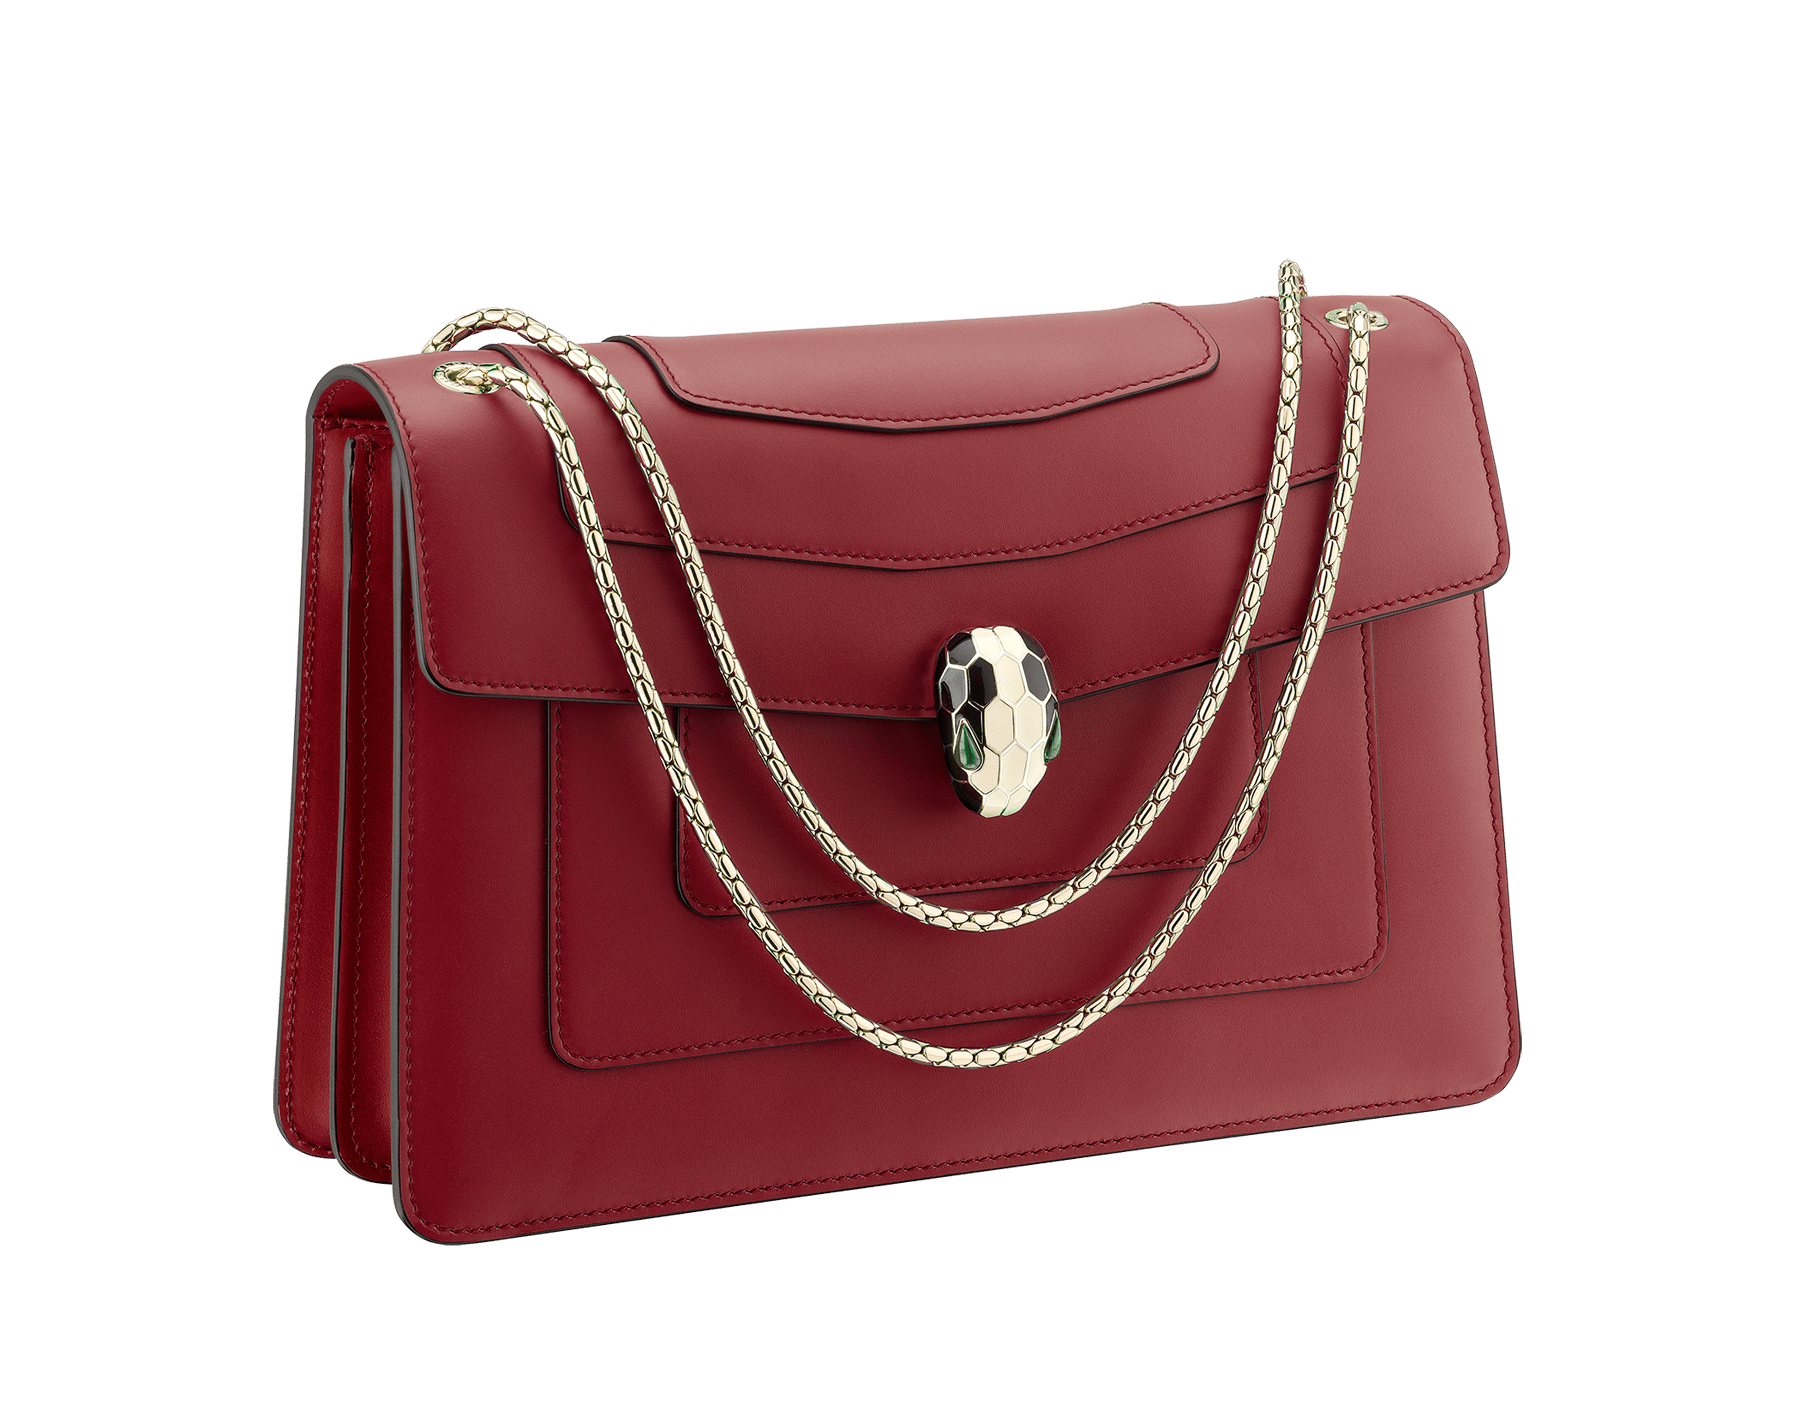 Flap cover bag Serpenti Forever in Roman garnet calf leather. Brass light gold plated snake head closure in black and white enamel with eyes in green malachite. 521-CLc image 2